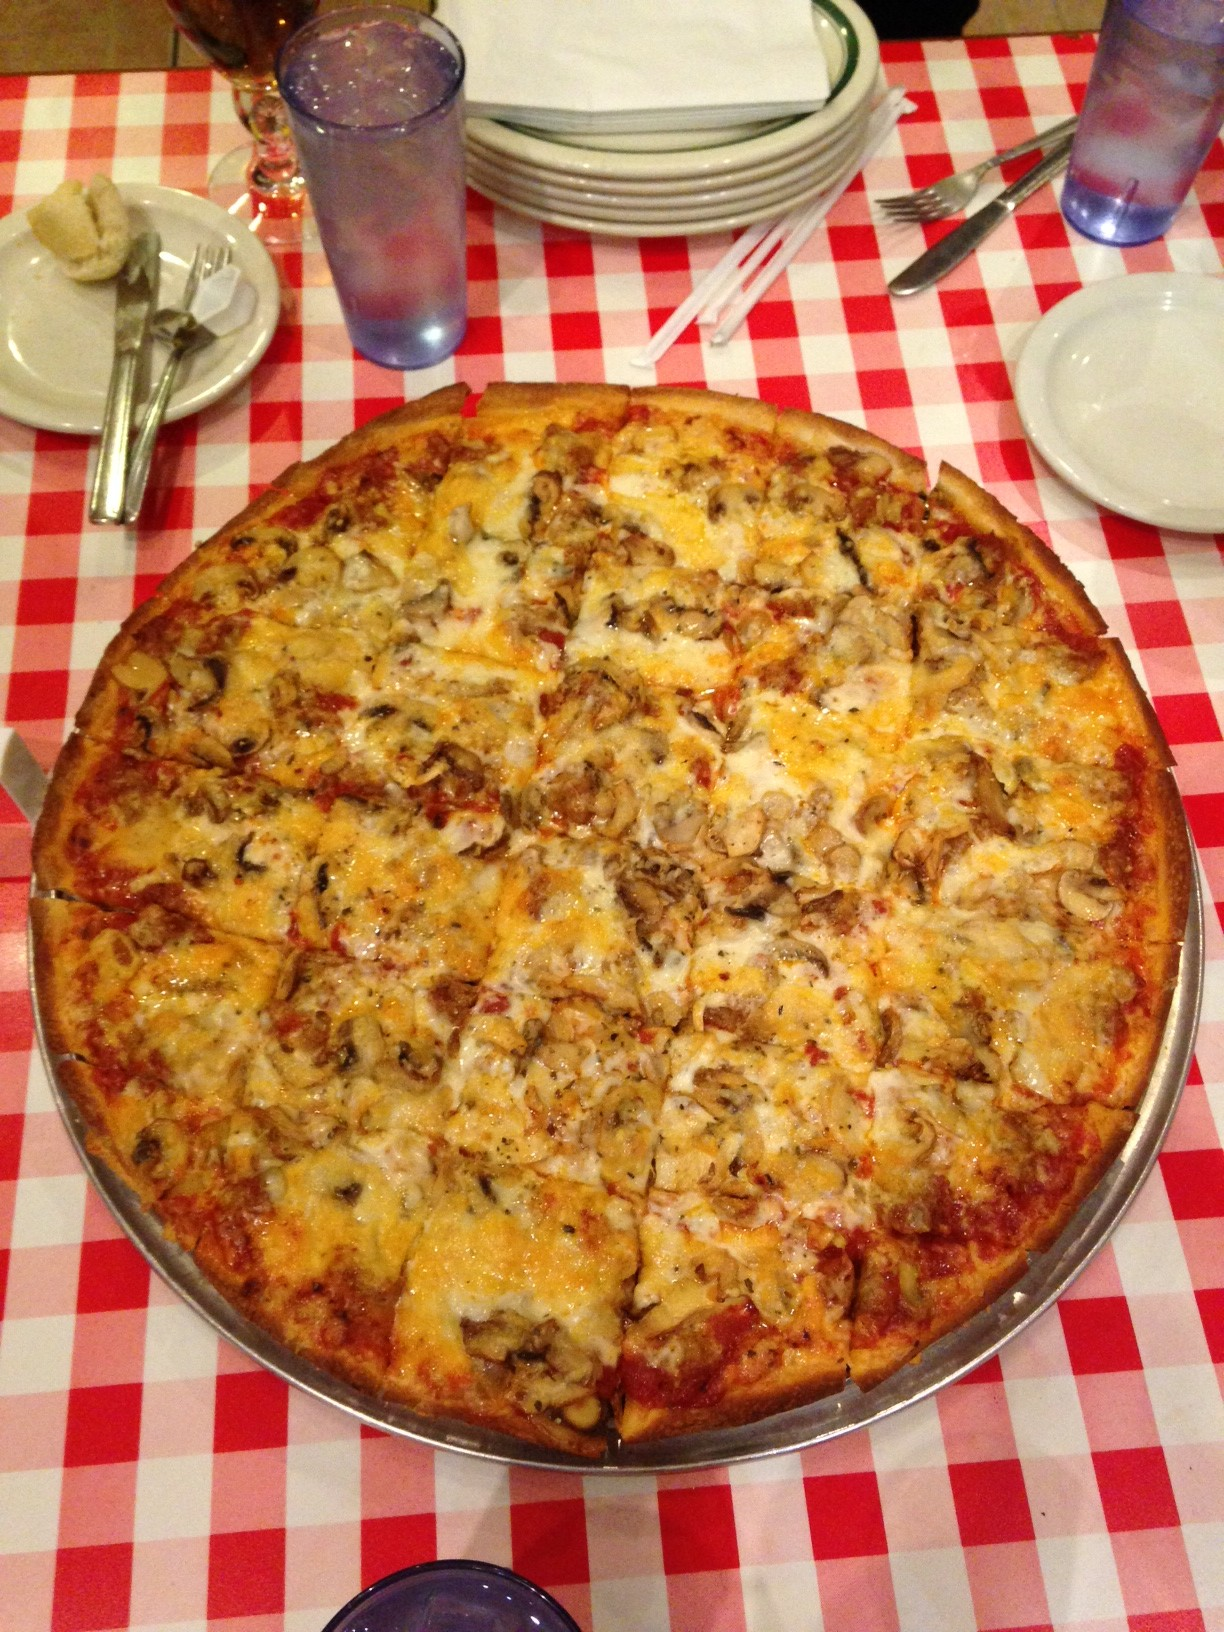 Aurelio's Pizza - Addison, IL - Pizza Pie - Dec 2013